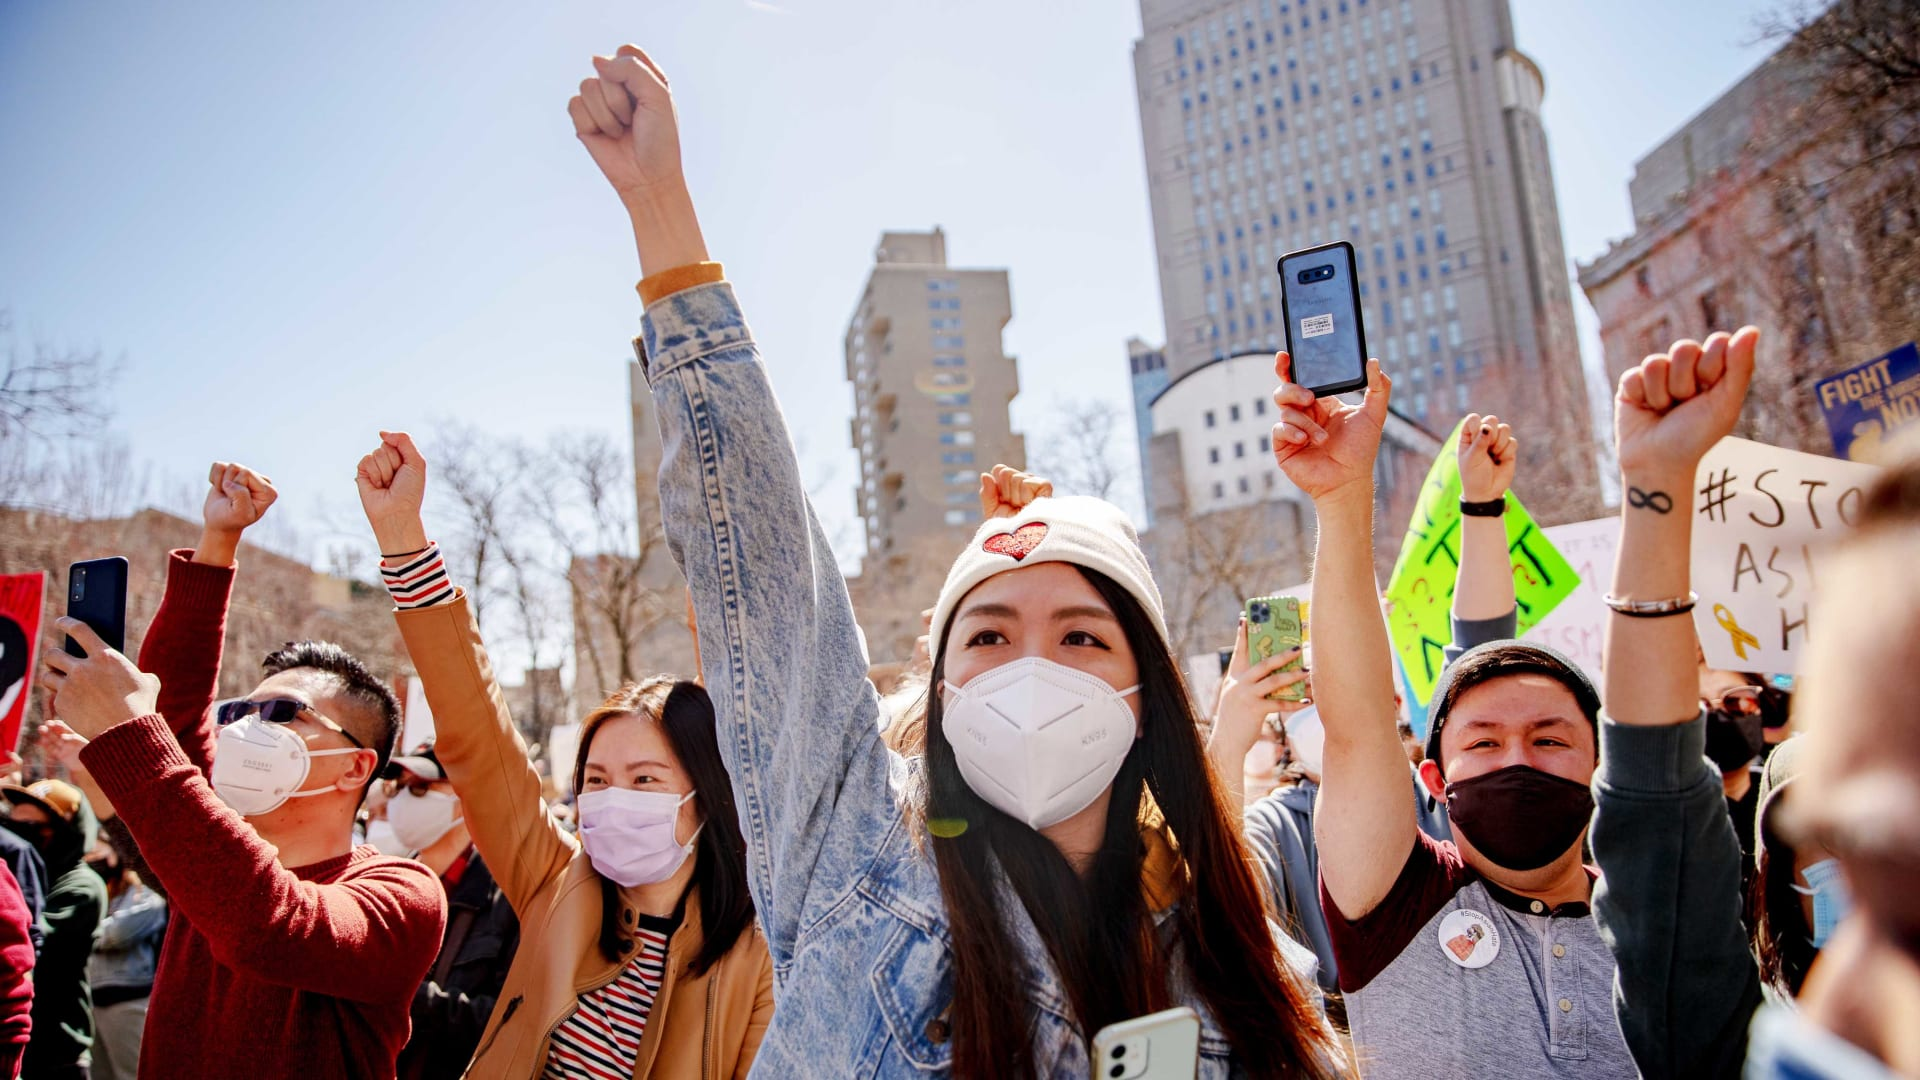 Demonstrators raise their fists during an AAPI Rally Against Hate in New York City on March 21, 2021.